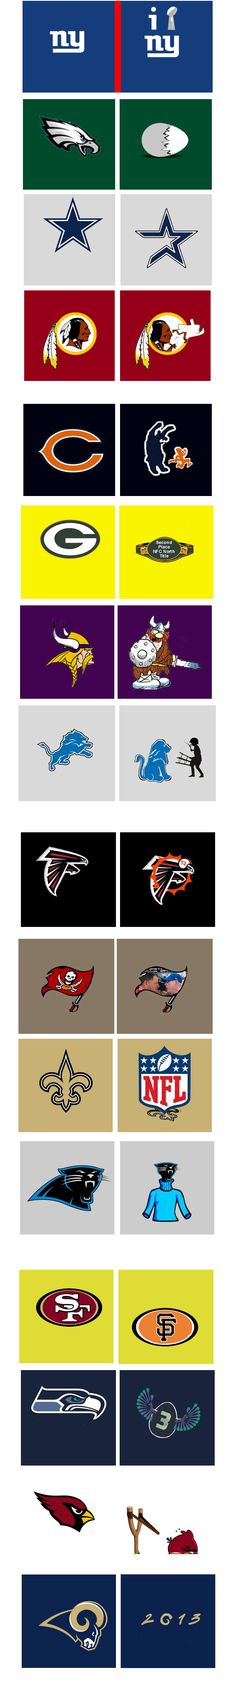 funny NFL team logo makeovers (totally a spoof, people). The Cardinals one is HILARIOUS.